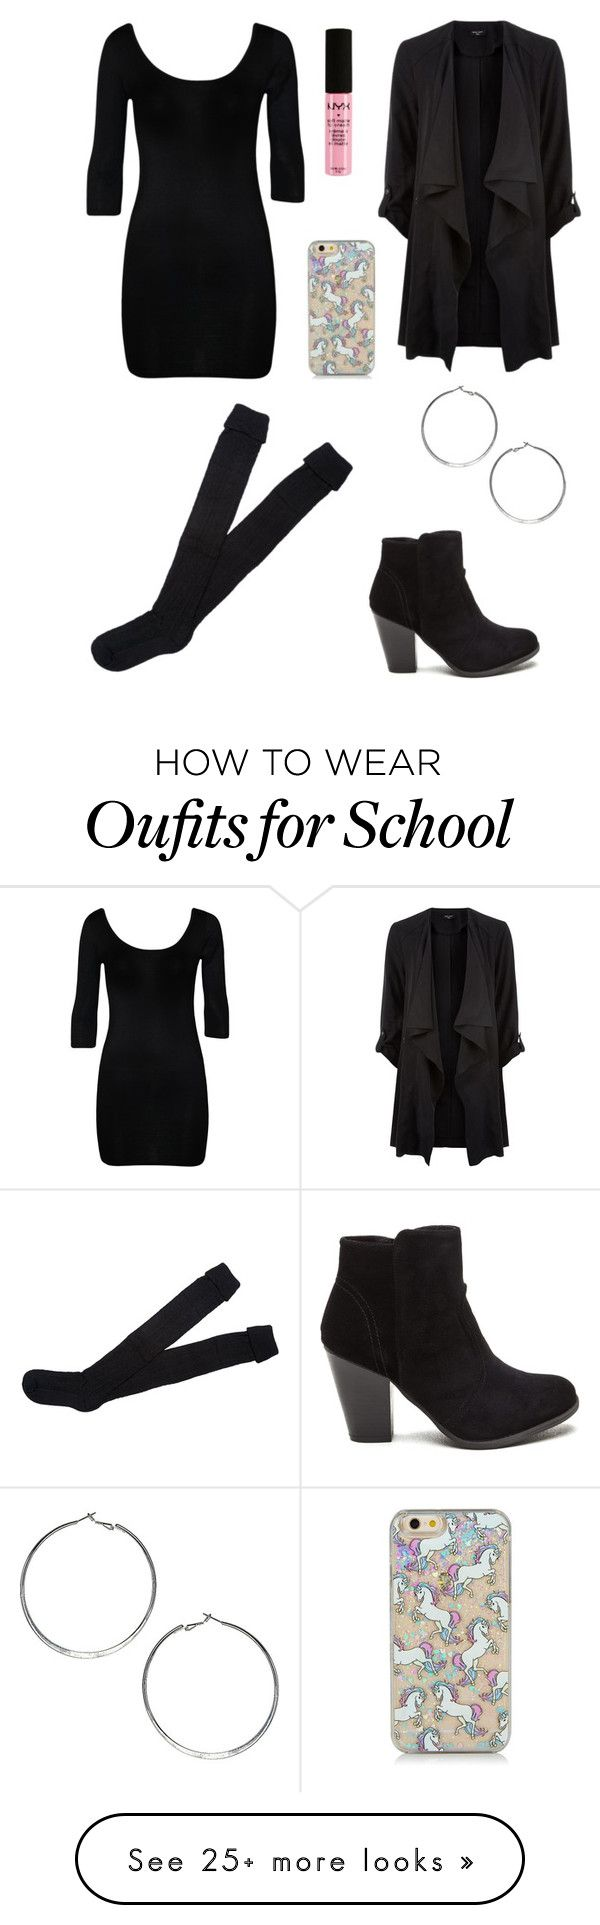 """Cosmetology school"" by fashionista-diva-983 on Polyvore featuring WearAll and Wallis"